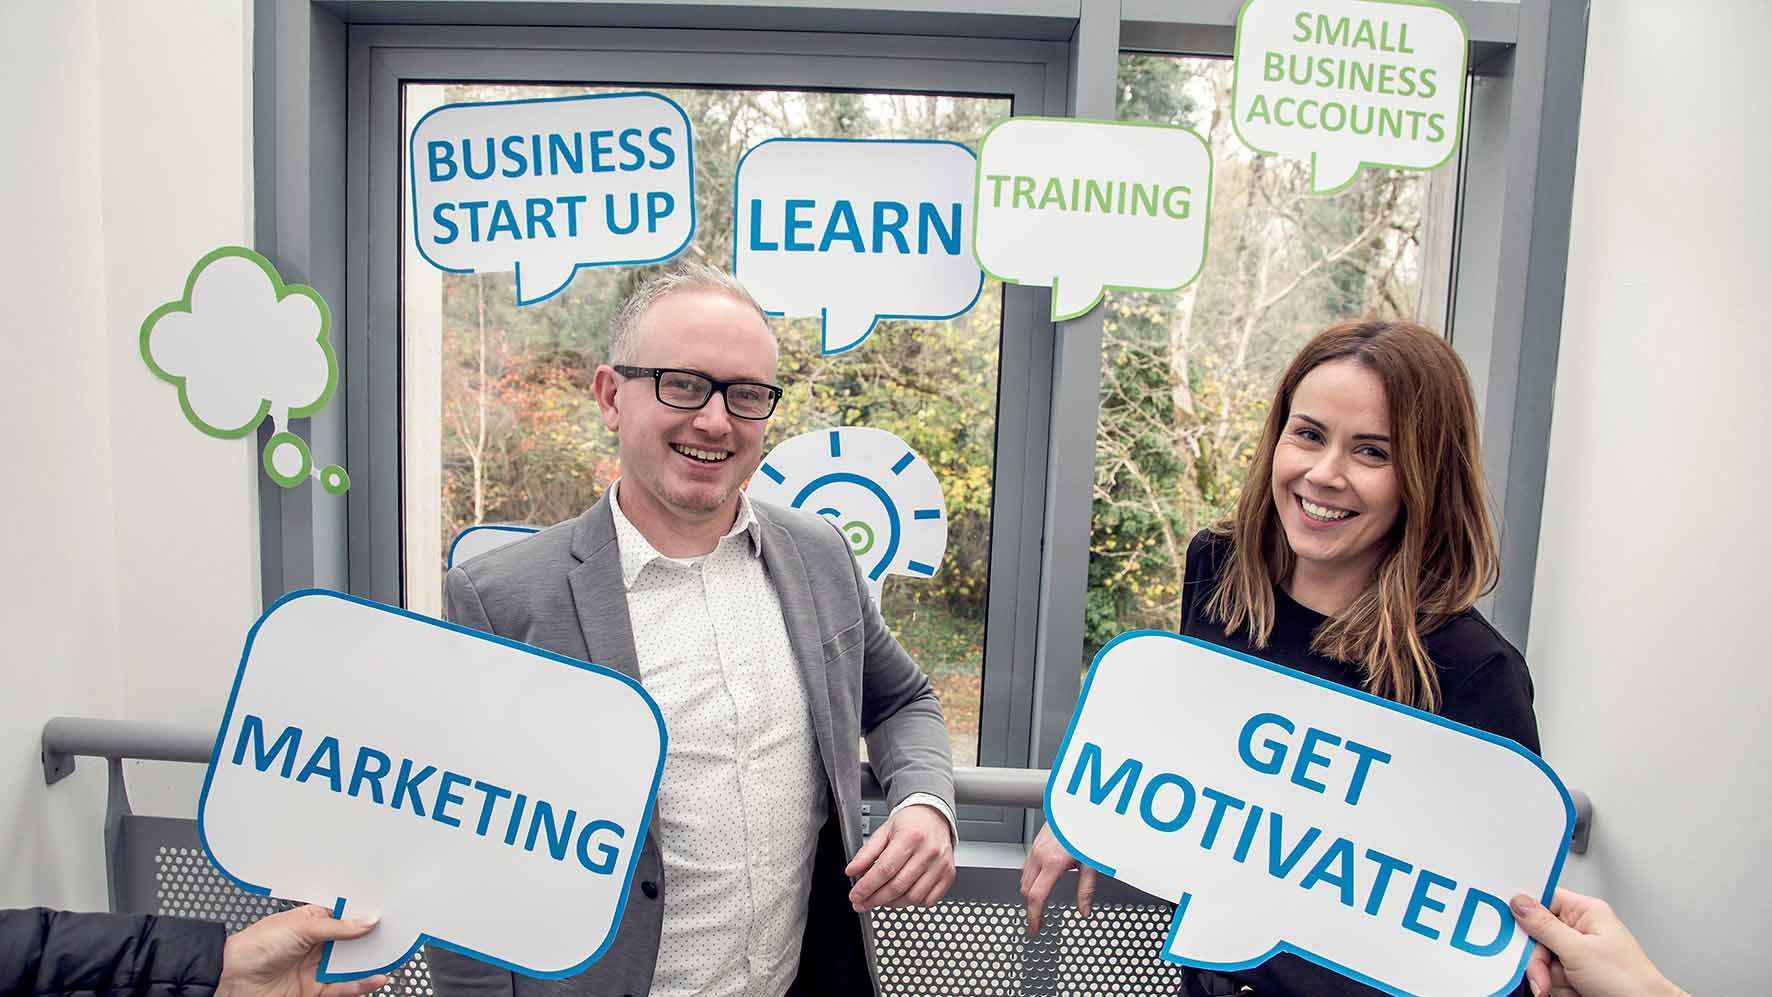 Trading online workshop series at Donegal Local Enterprise Office